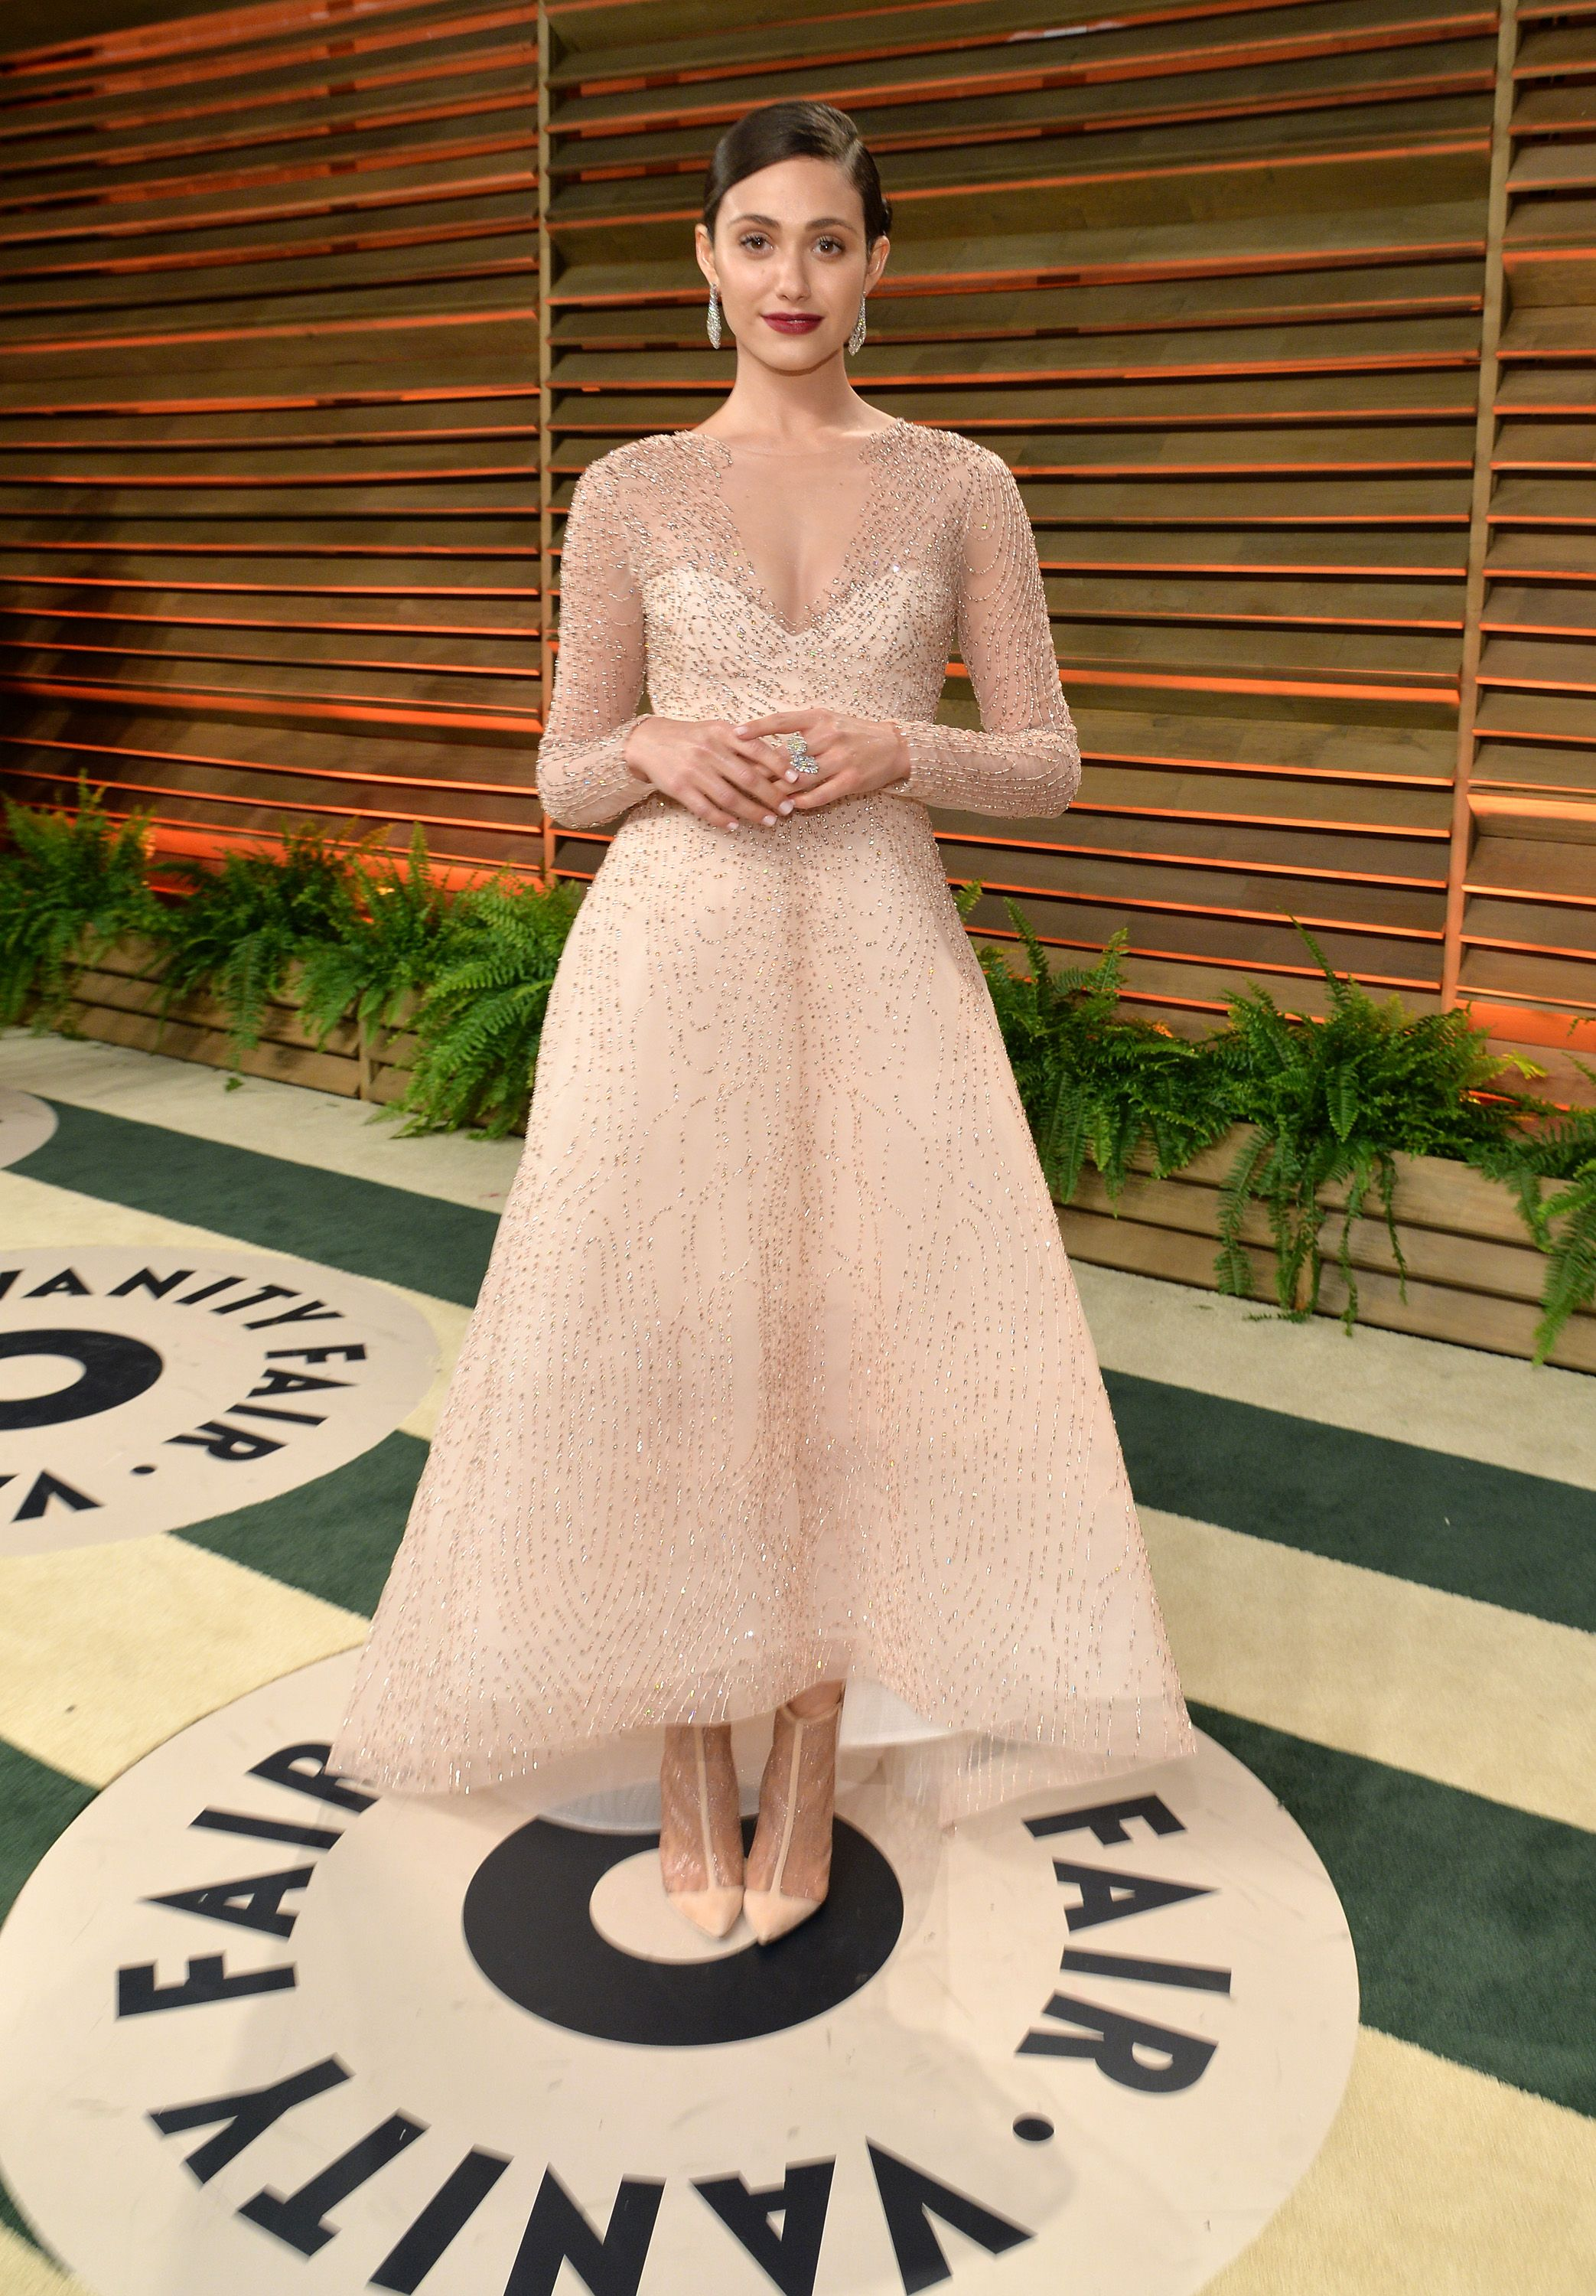 f8f67990176a14 Emmy Rossum  Our favorite thing about Emmy Rossum s Monique Lhuillier dress  at the Vanity Fair Oscar party  The fact that the hemline lets us get a  peek at ...